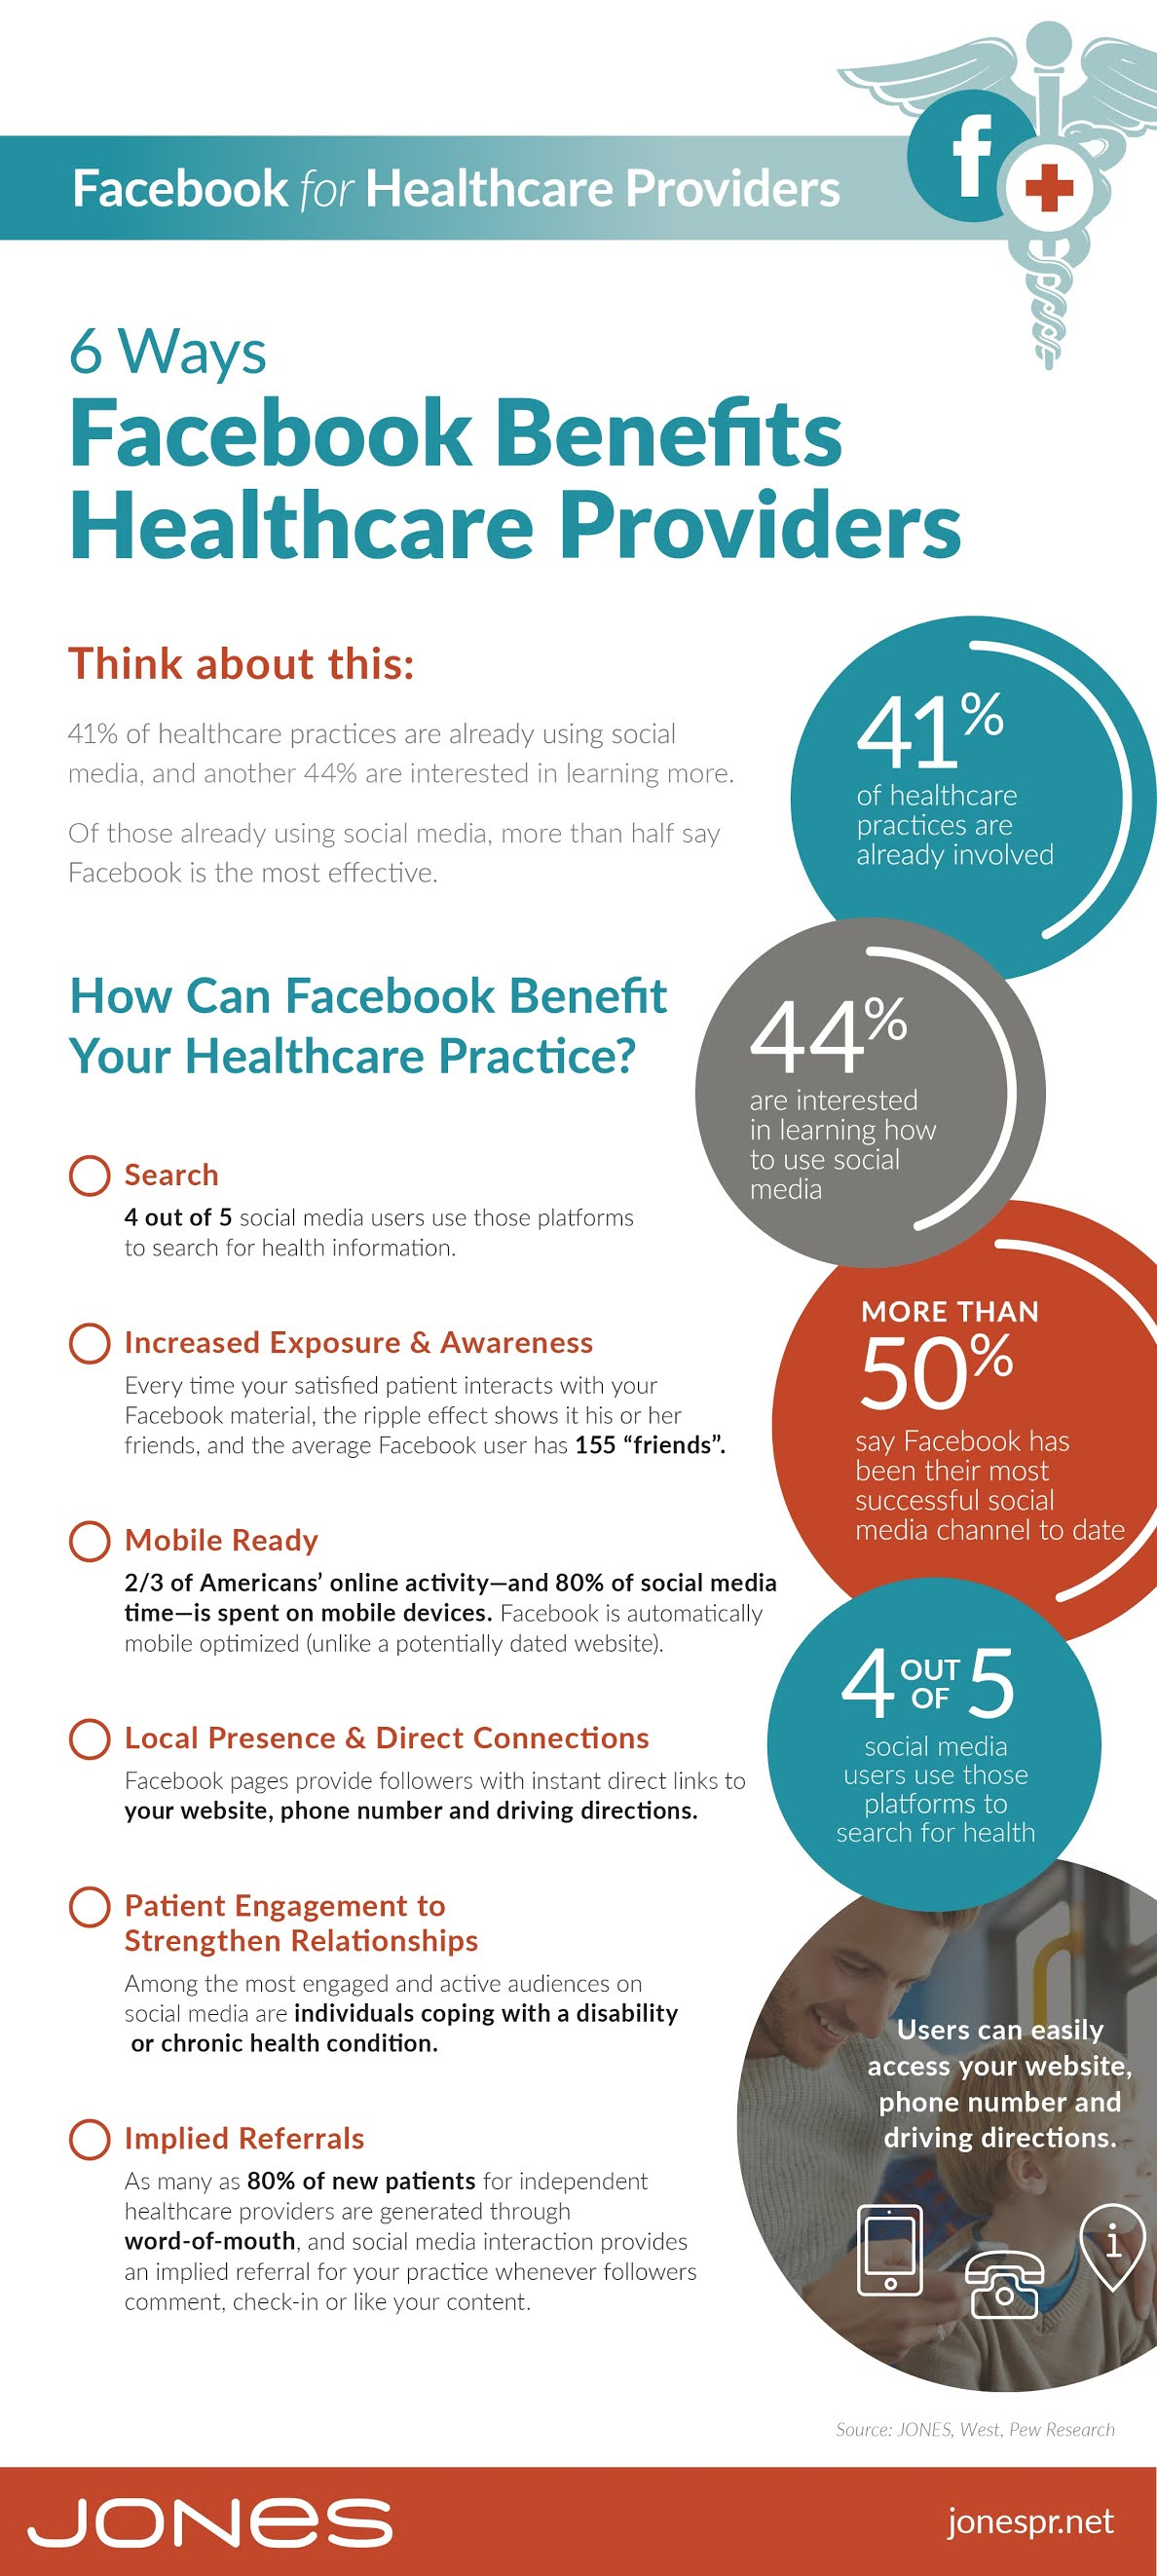 6 Ways Facebook Benefits Healthcare Providers #infographic #Social Media #infographics #Healthcare Marketing #infographic #Facebook